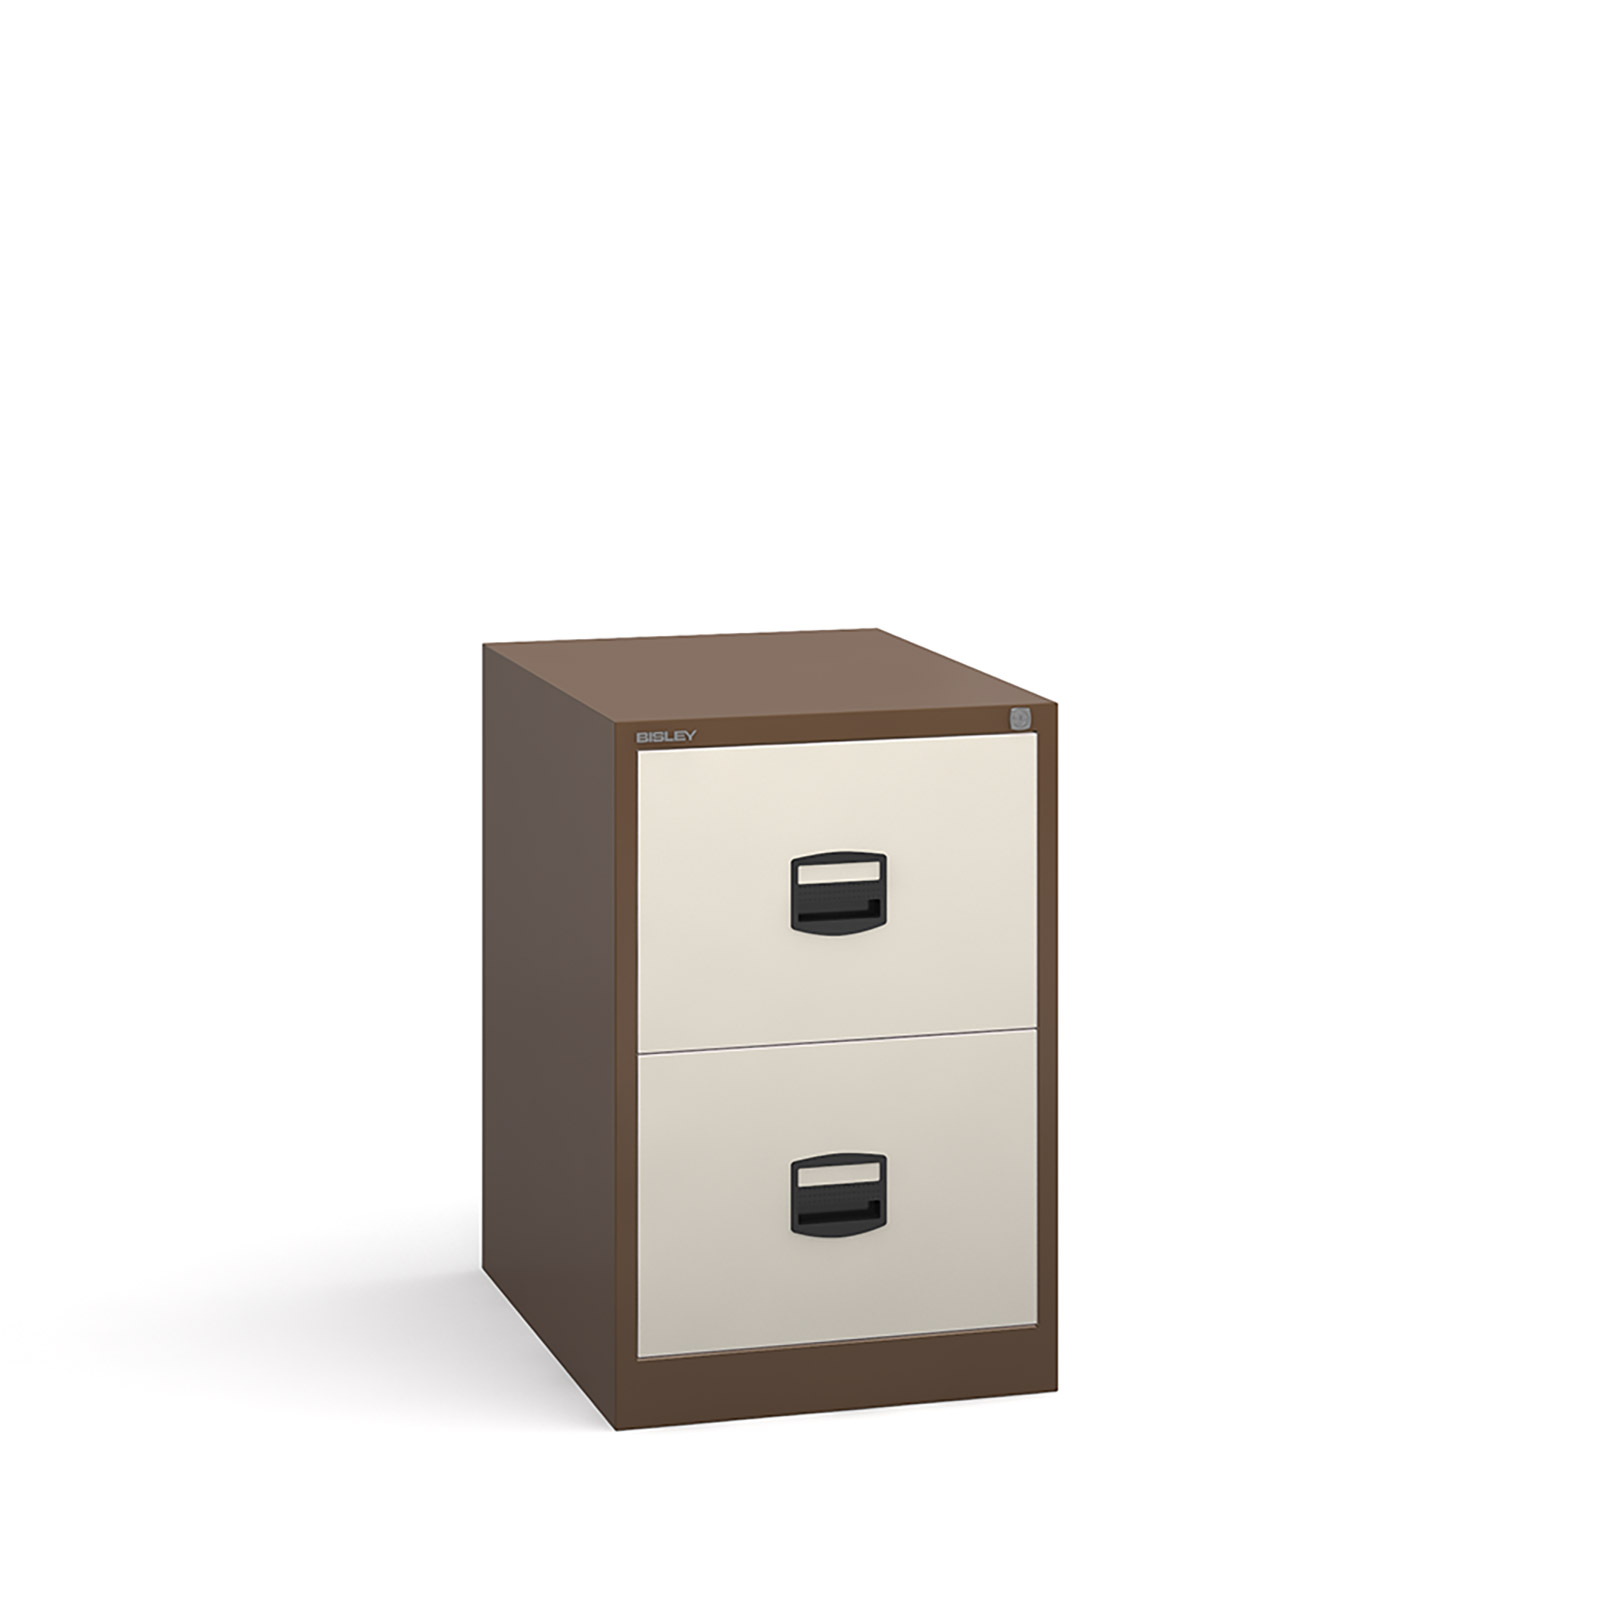 2 drawer contract filing cabinet in Coffee Cream